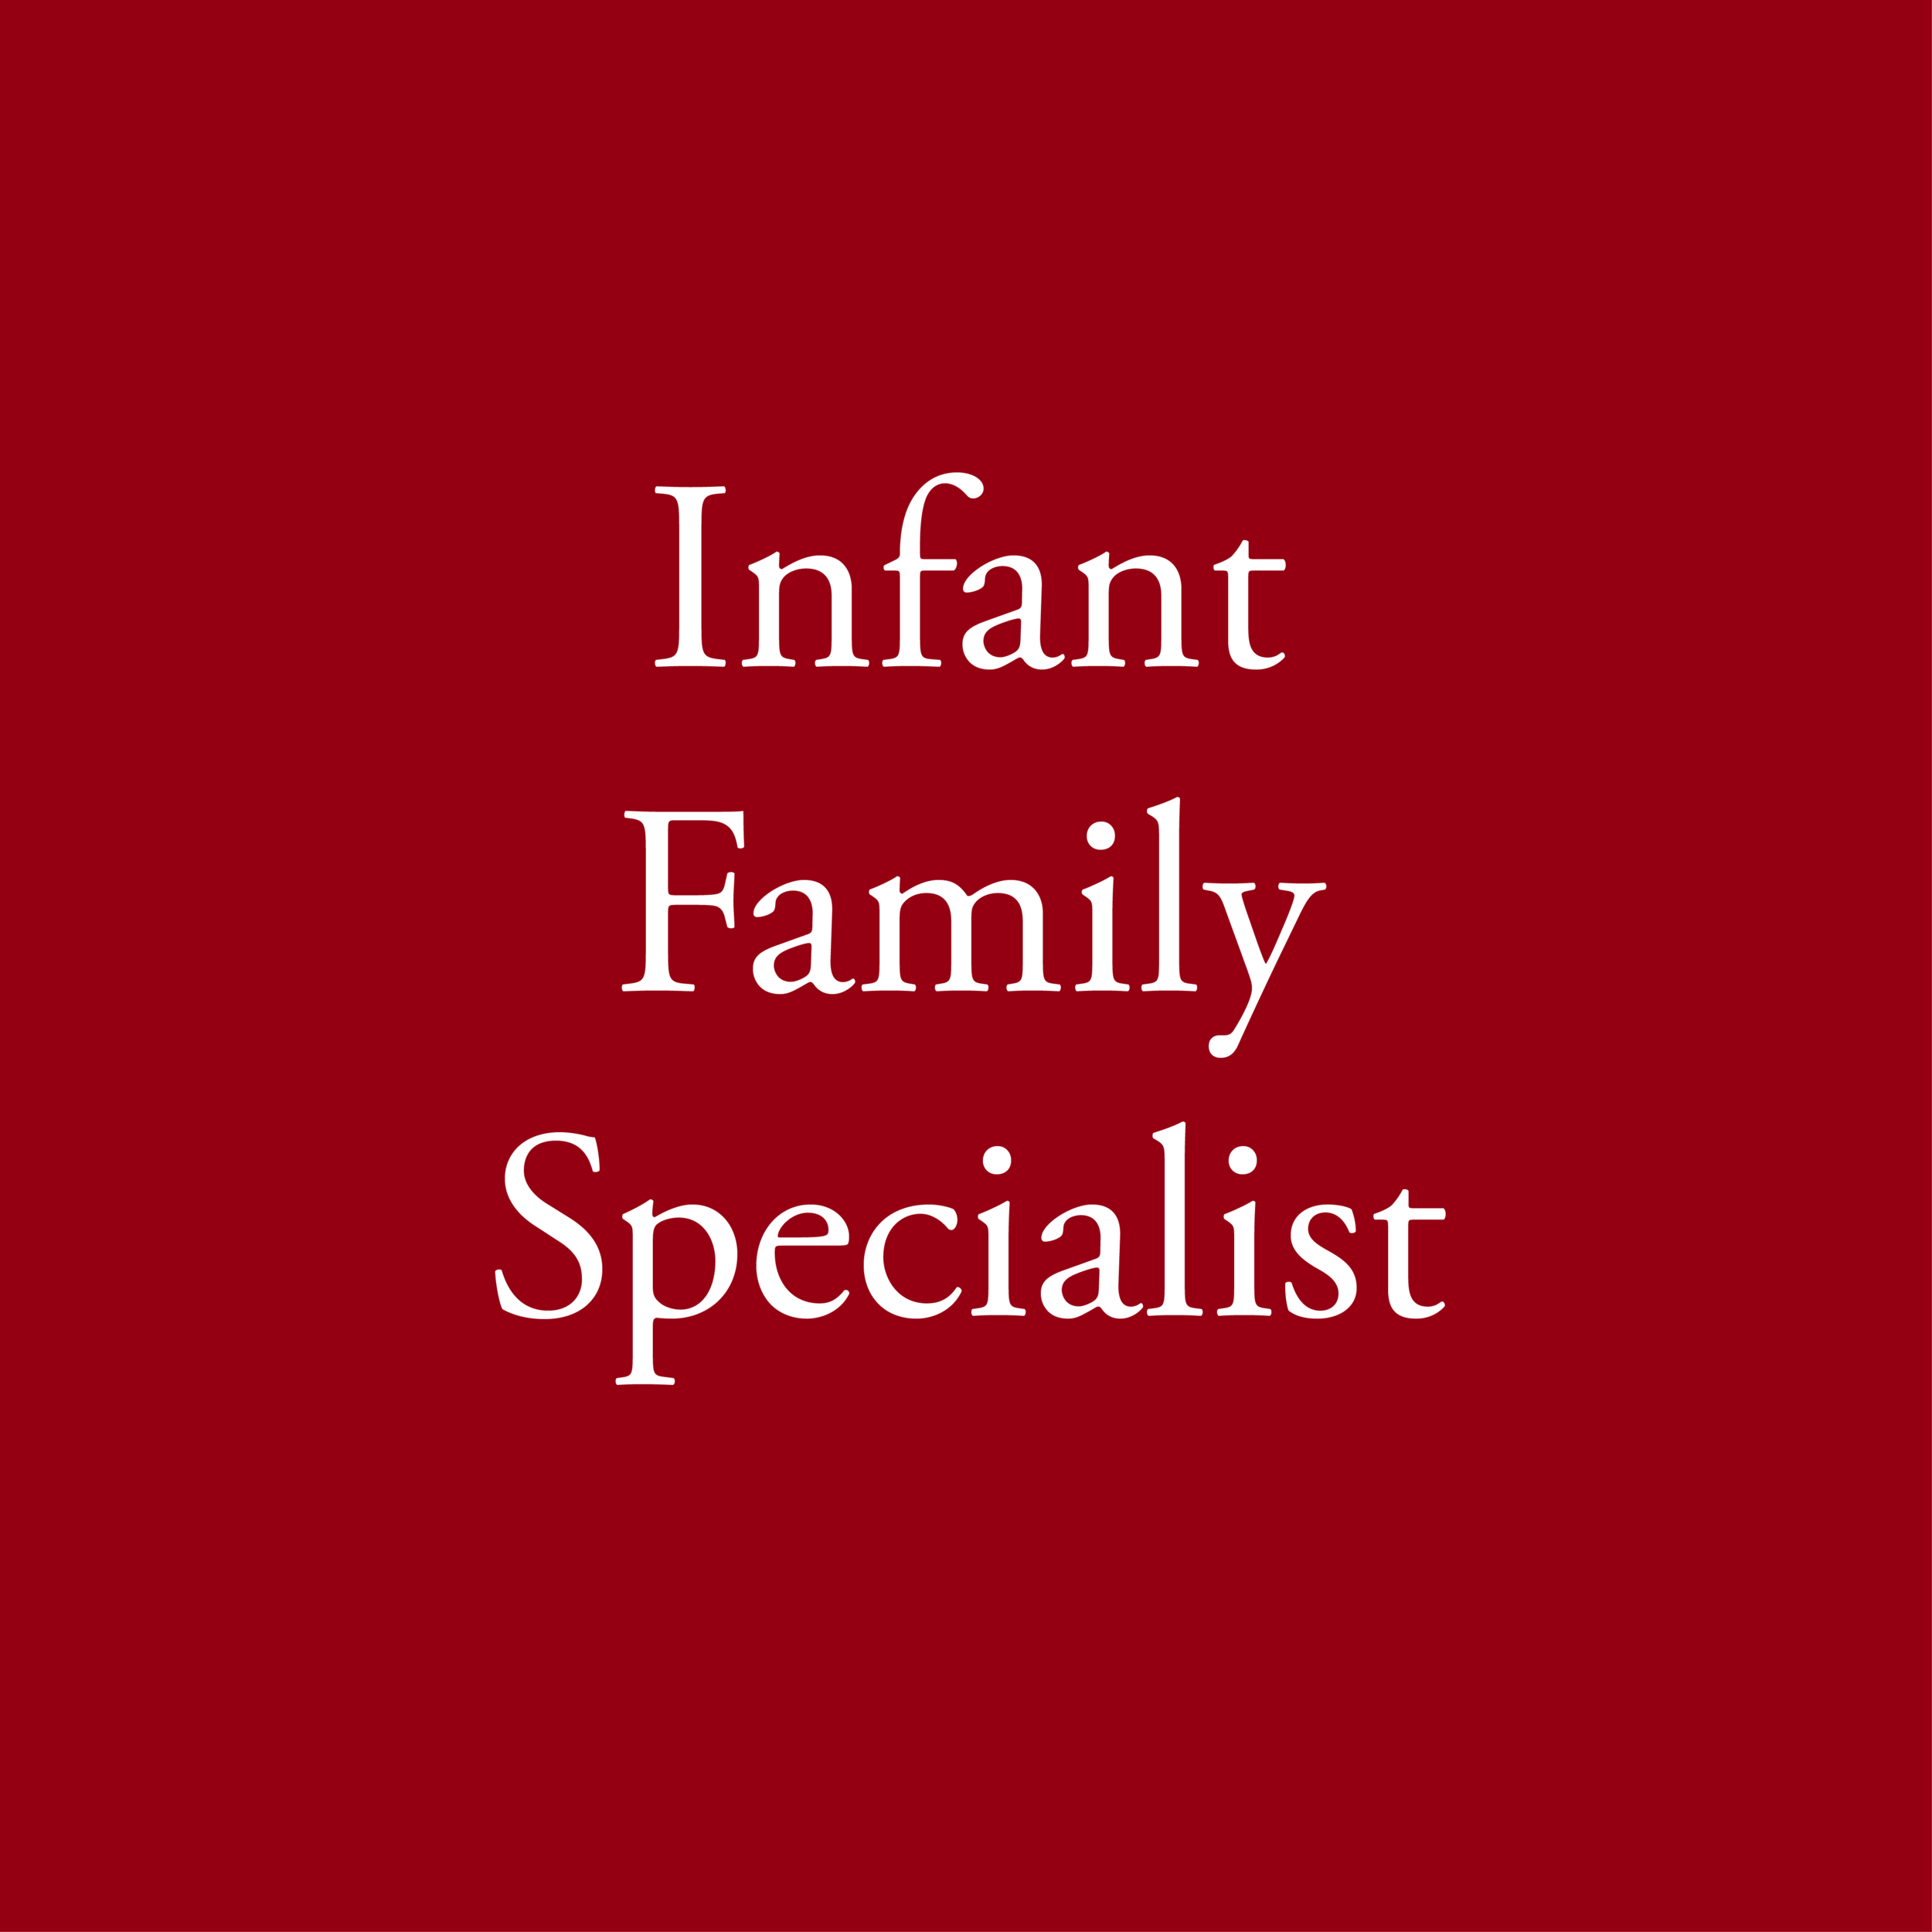 Infant Family Specialist-01-01.png